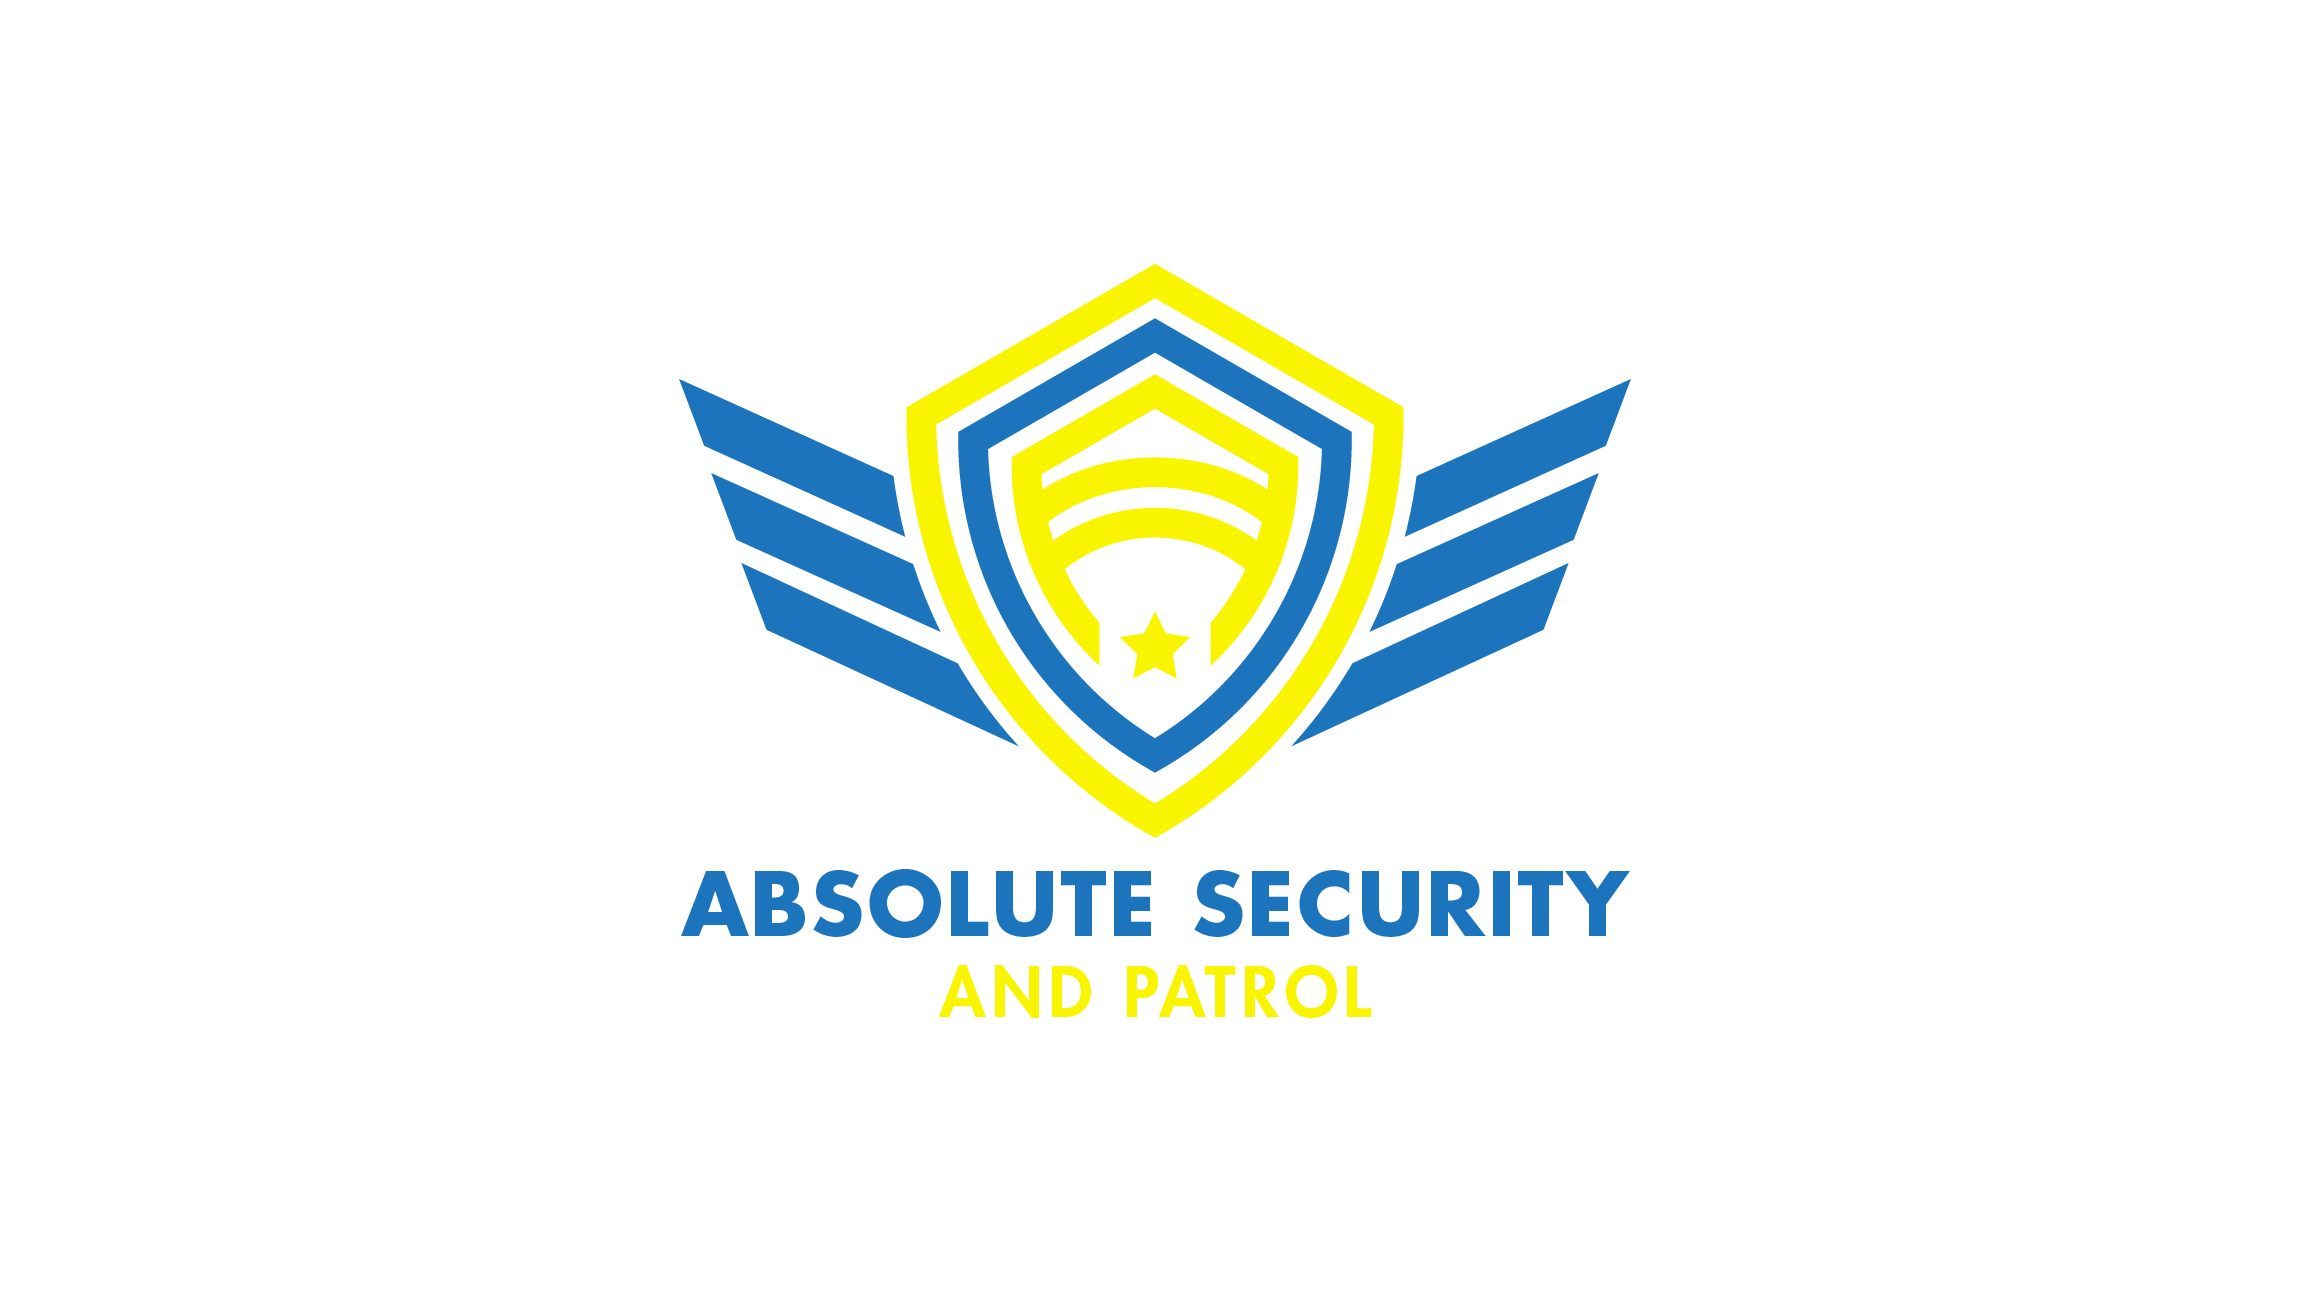 Texas Security Company, Absolute Security and Patrol, Announces New Service Areas in Arlington, Irving, Dallas, and Fort Worth 2